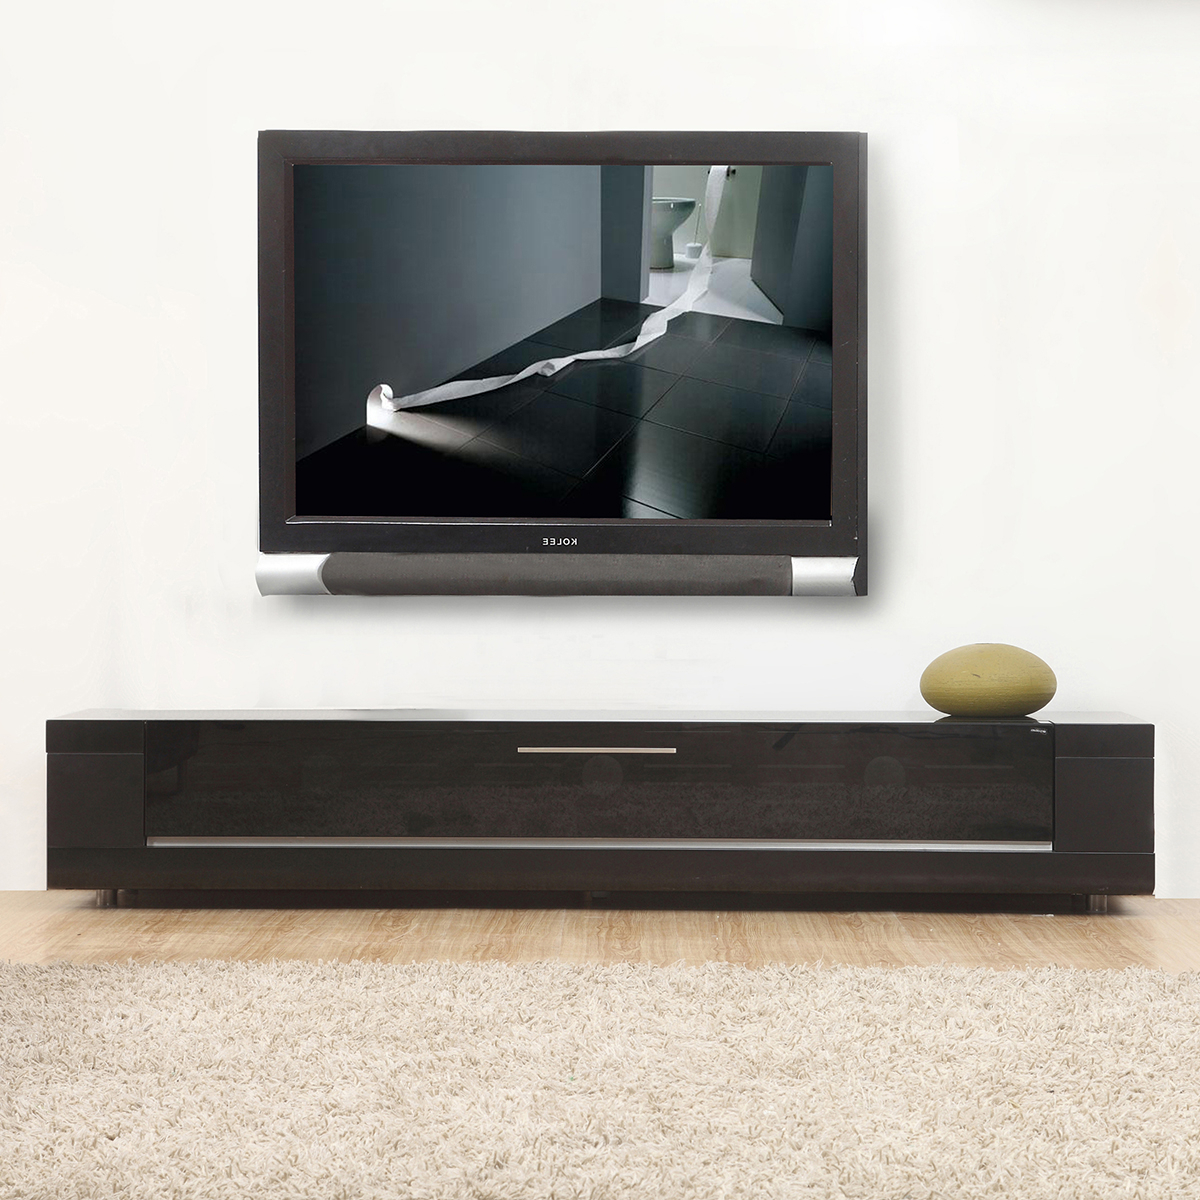 Tv Television Stands 71 & Wider With Regard To Noah 75 Inch Tv Stands (View 4 of 20)